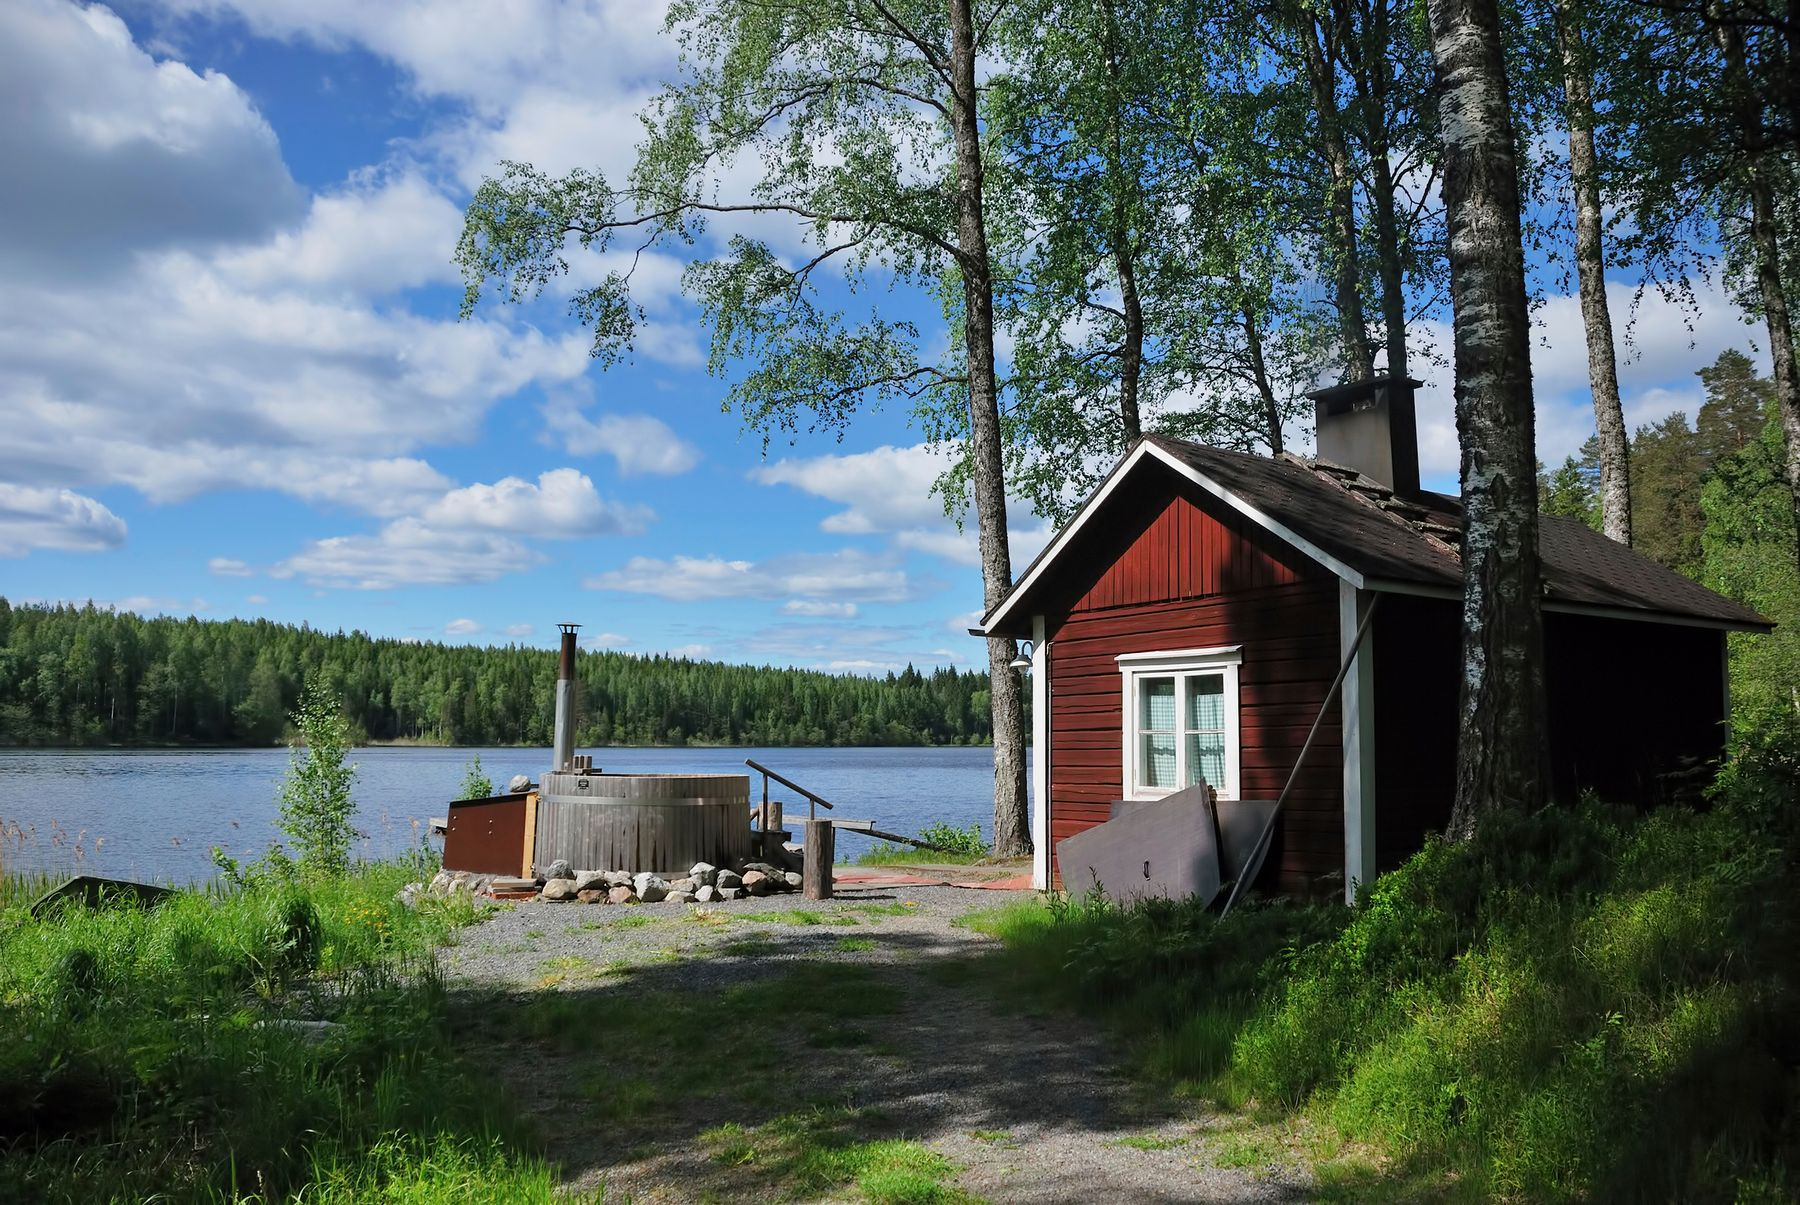 cabin by the lake in the woods